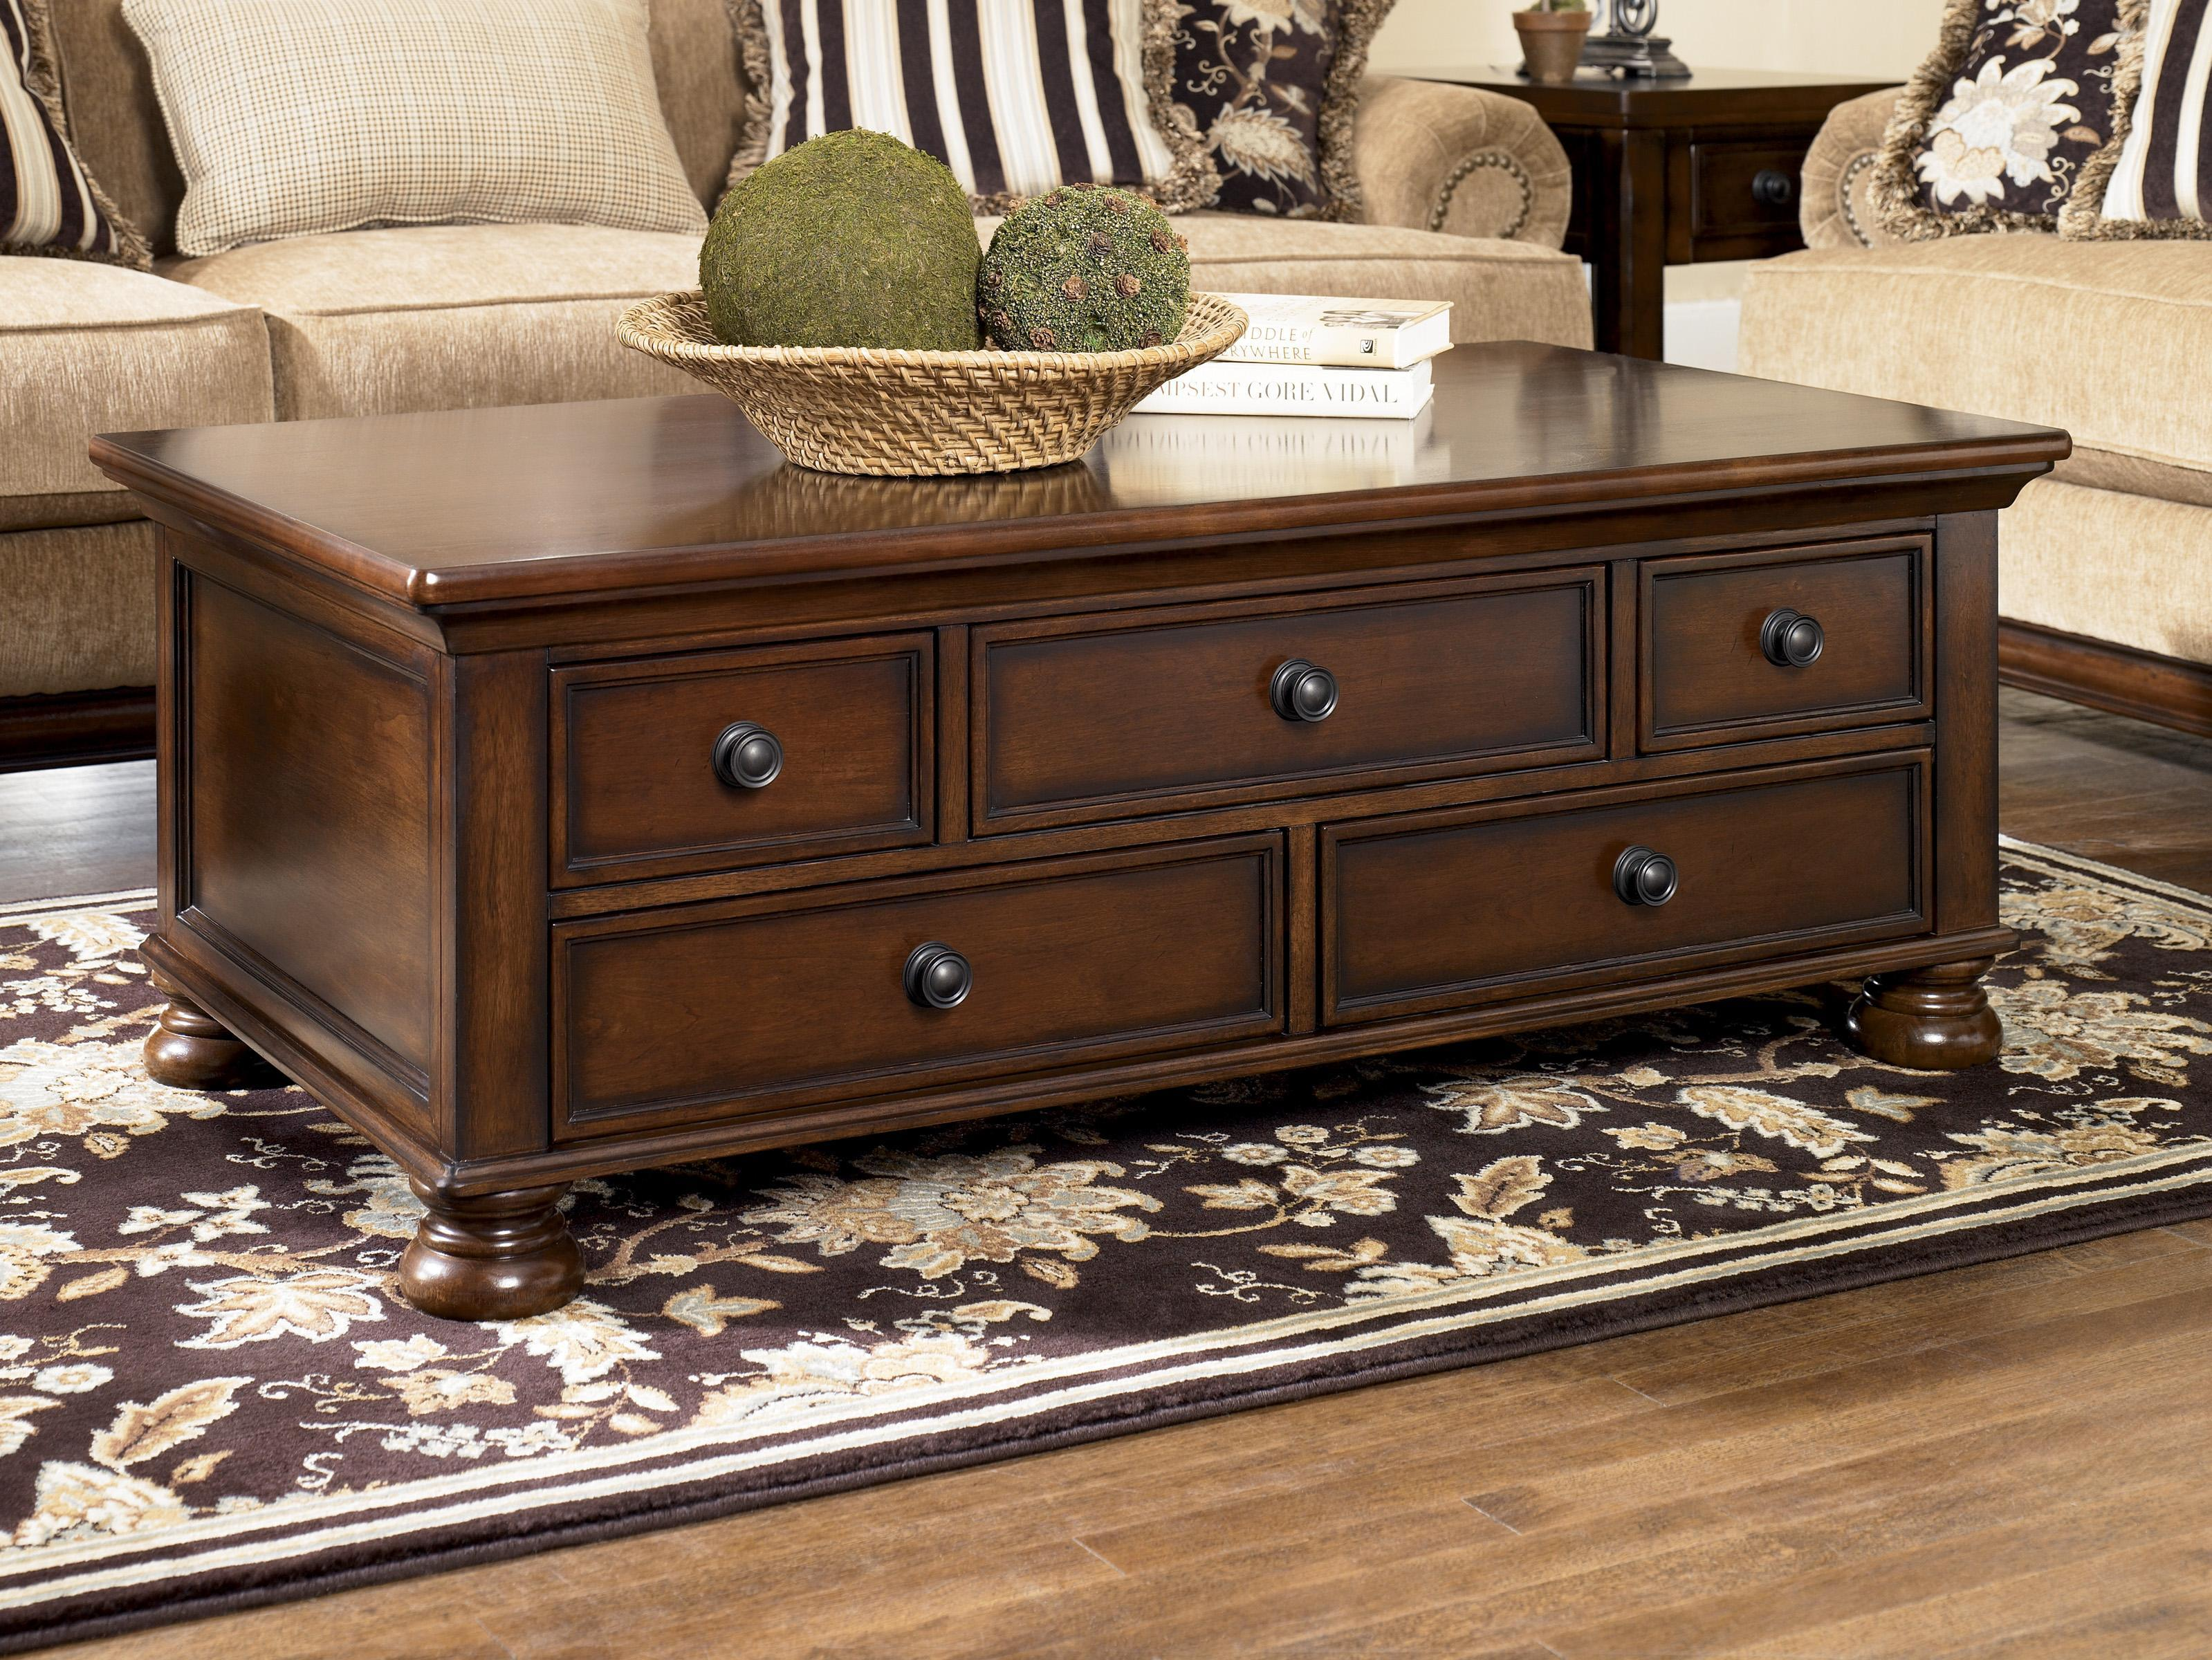 Rectangular Coffee Table Design Images Photos Pictures